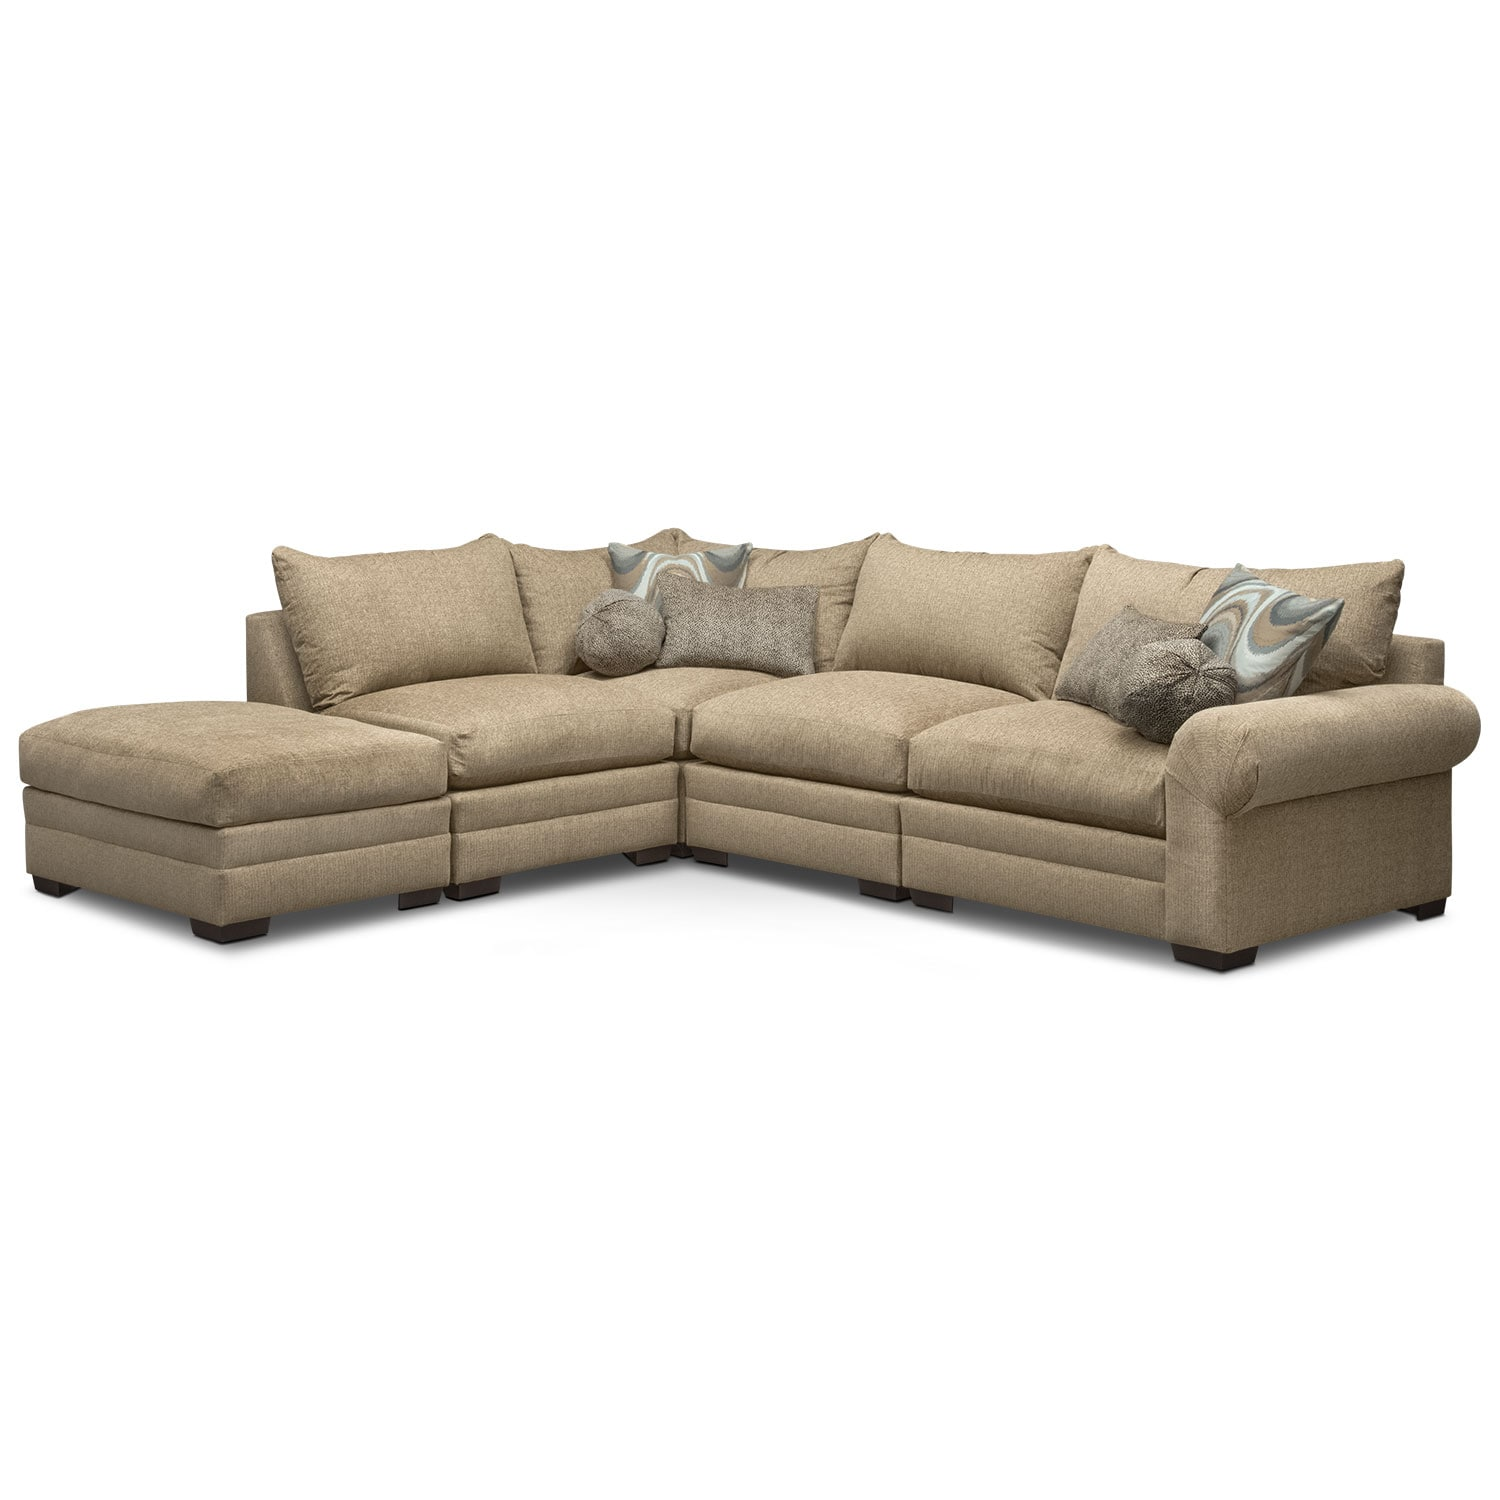 Wilshire 5-Piece Left-Facing Sectional - Taupe